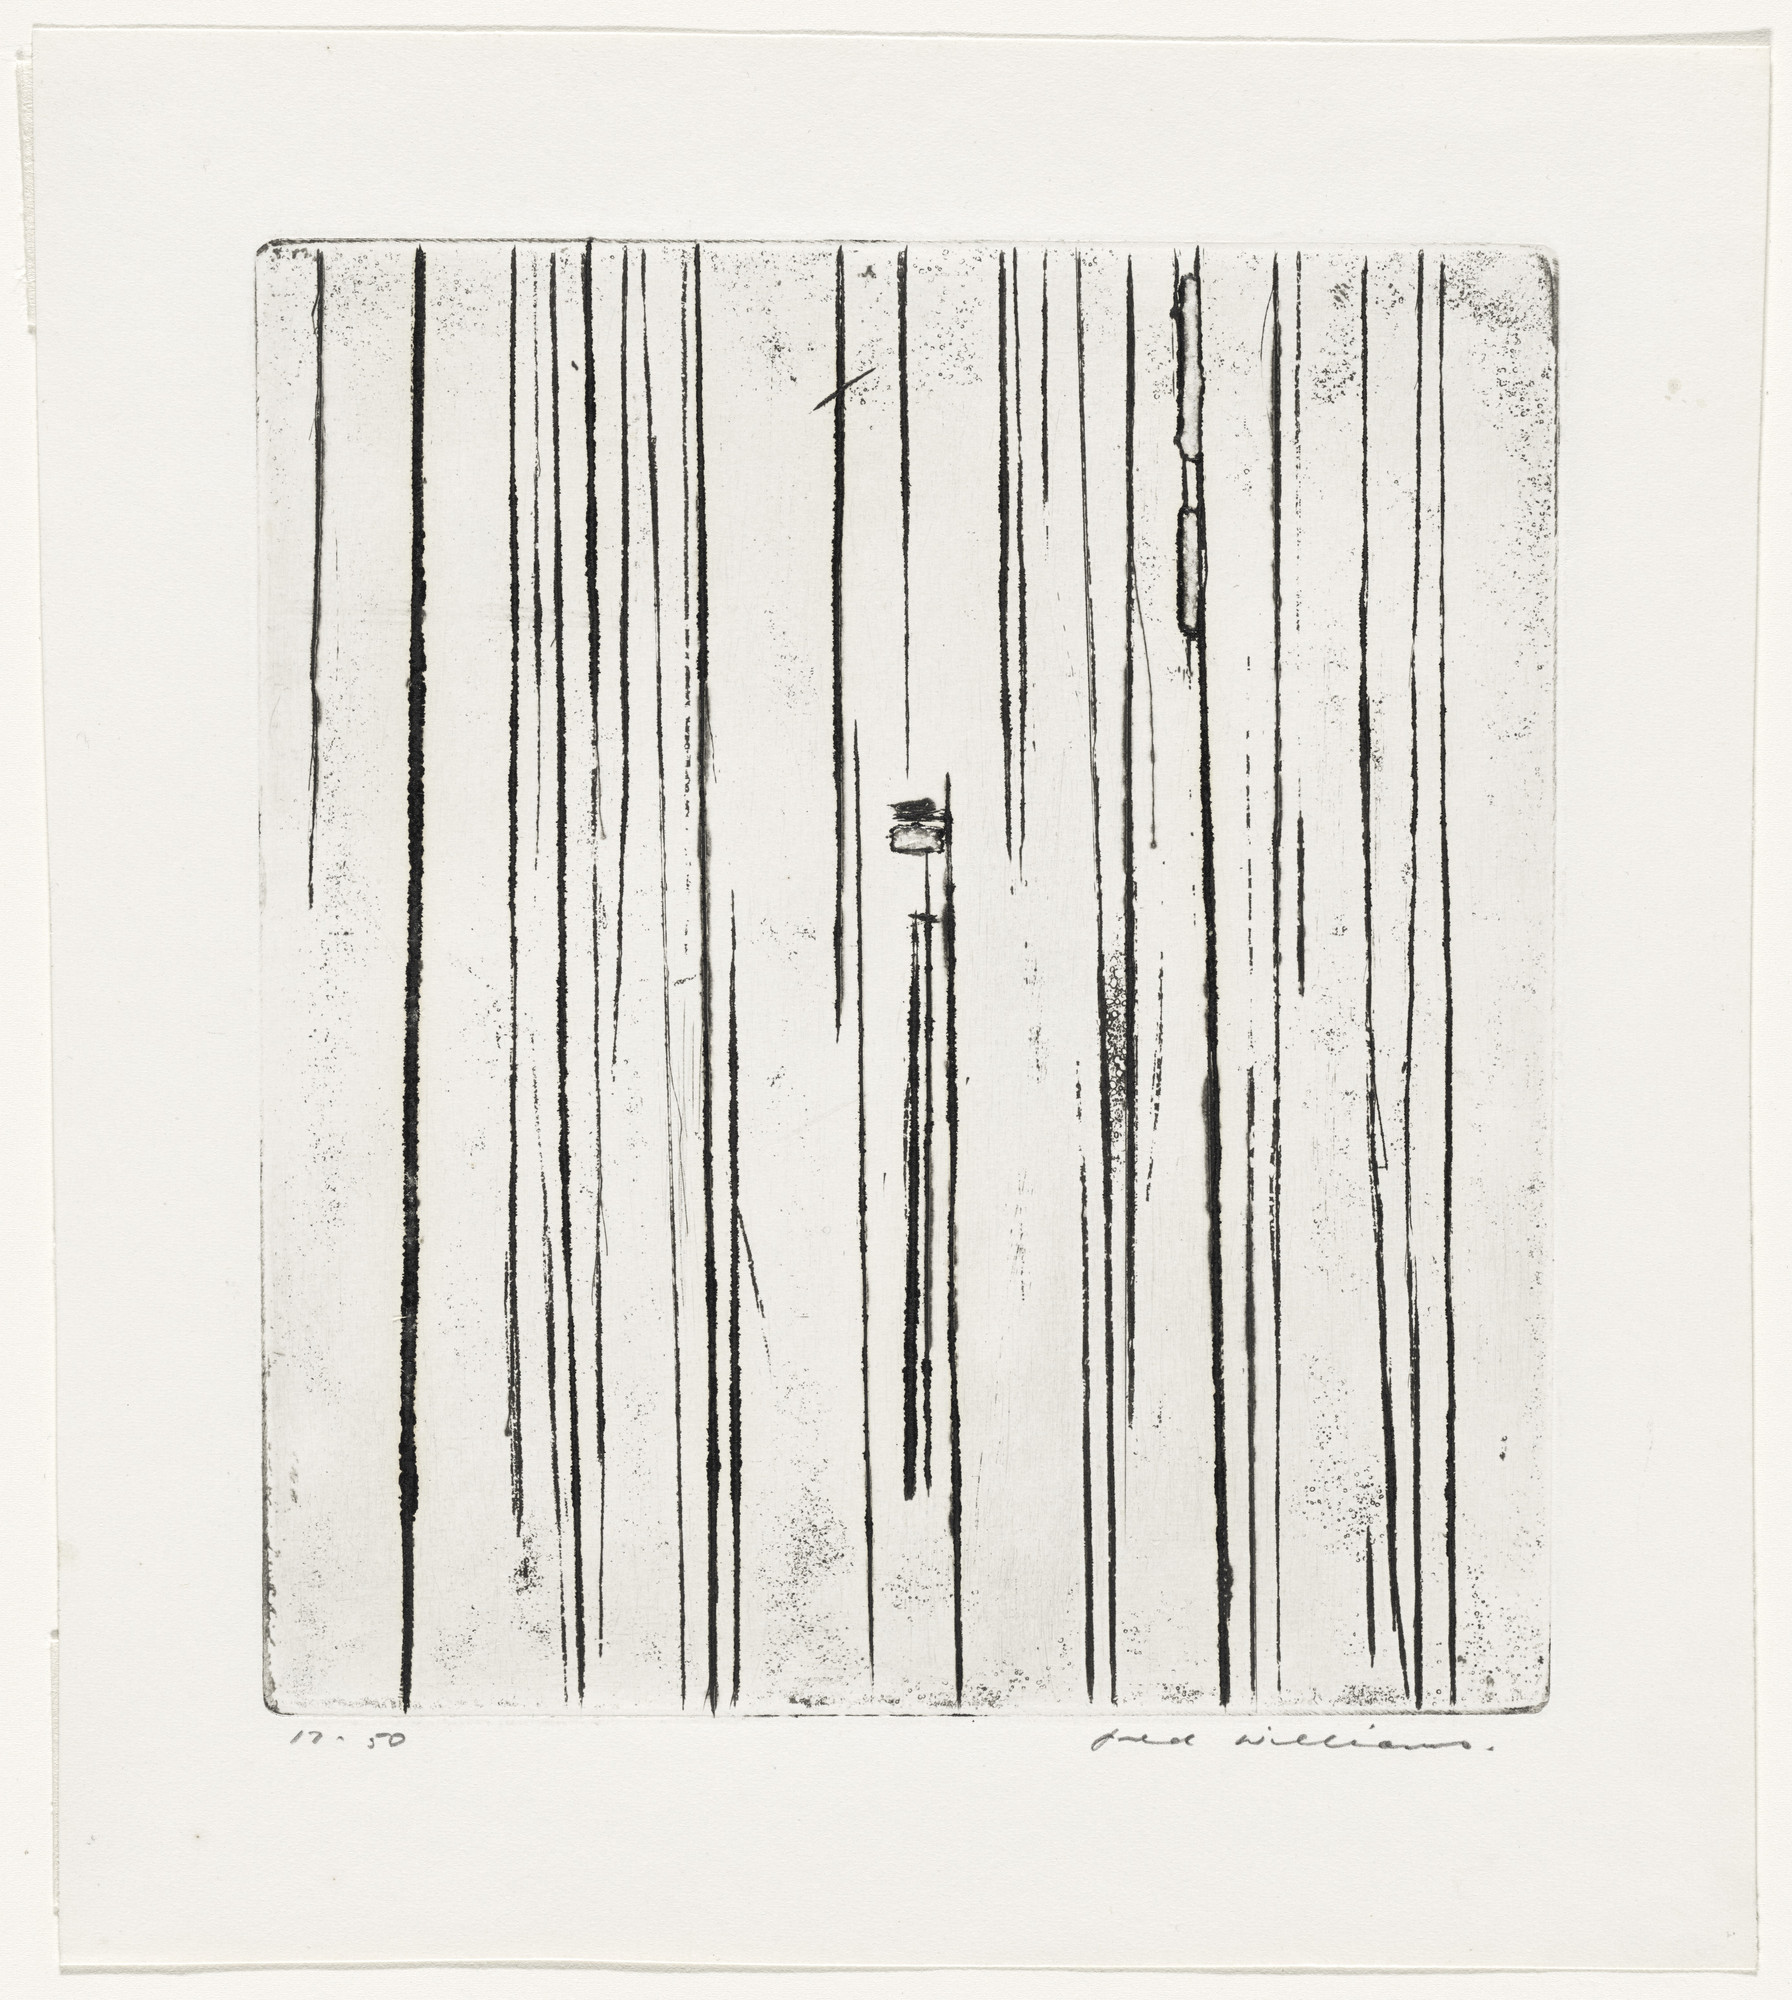 Fred Williams. Sherbrooke Forest No. 1, State XV/XXIII. 1961